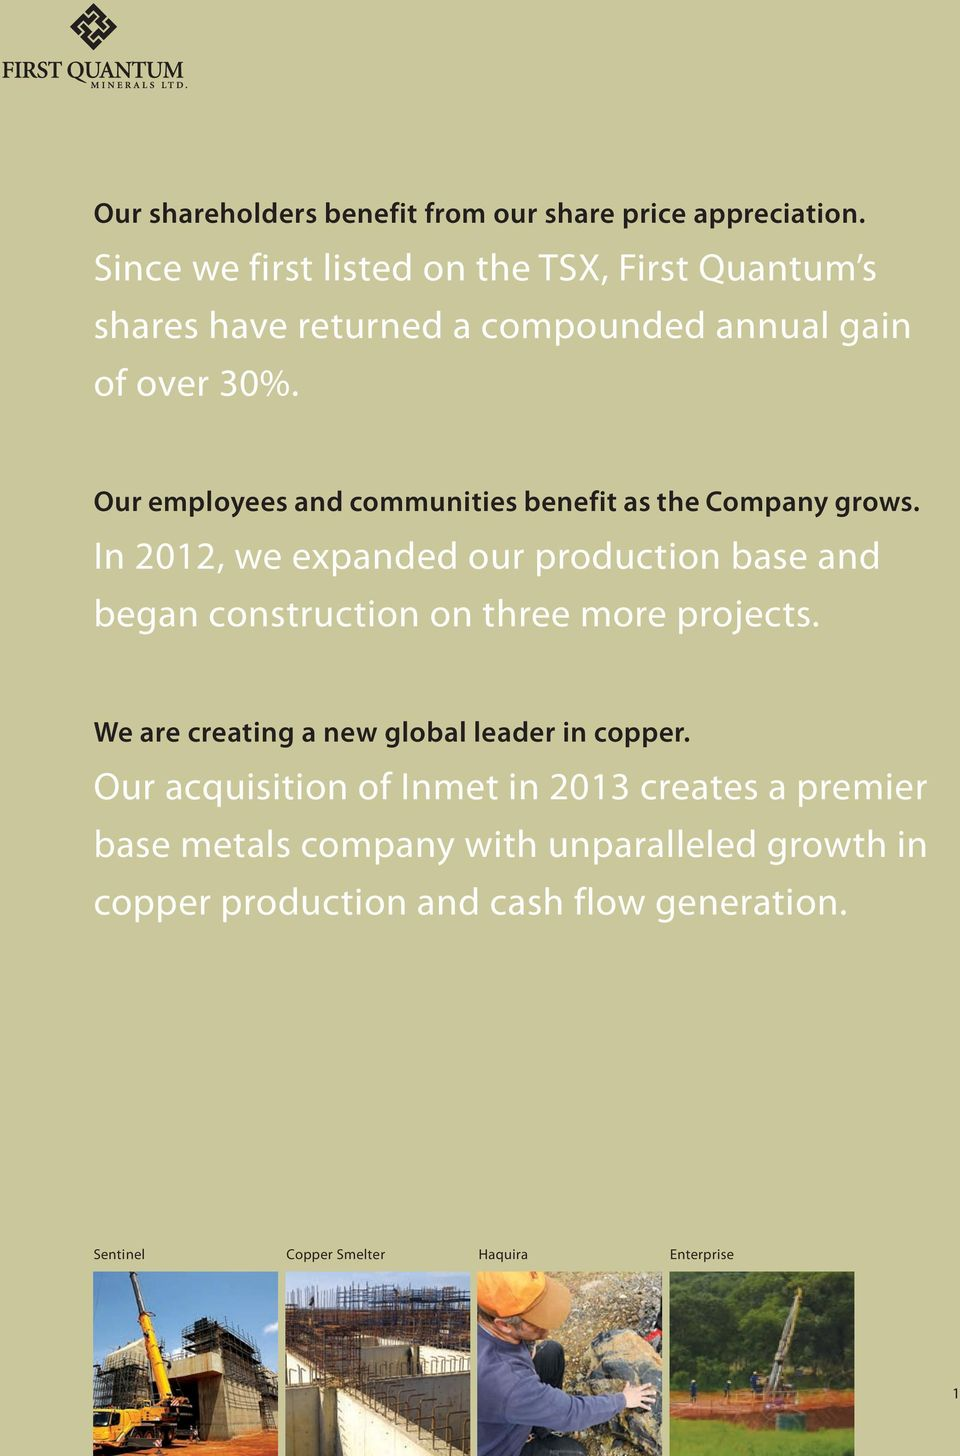 Our employees and communities benefit as the Company grows.